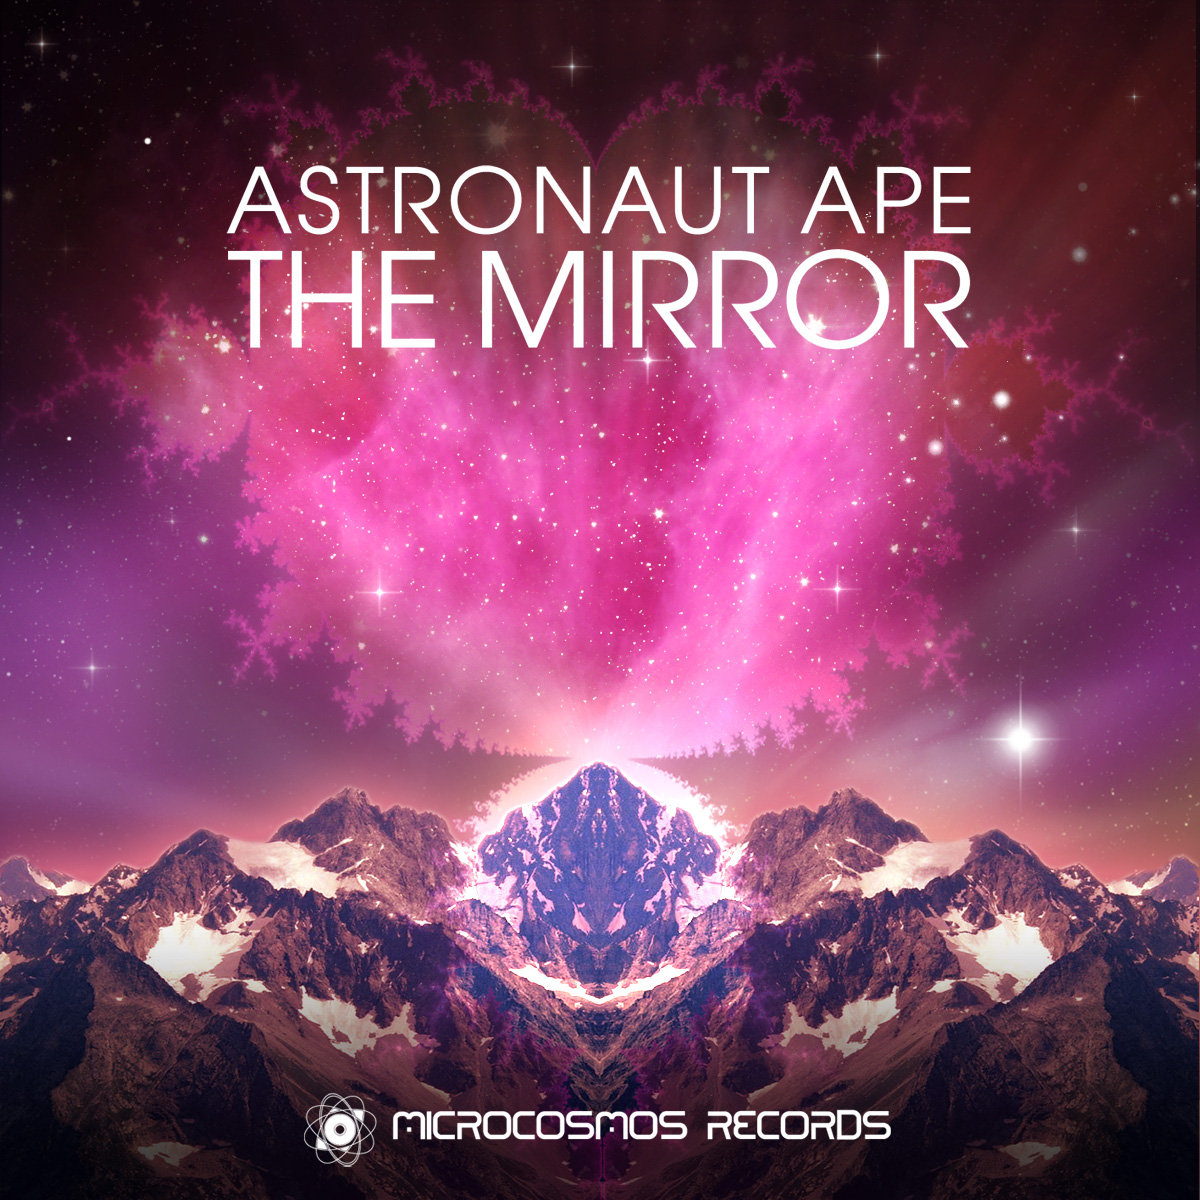 Astronaut Ape - Citylife @ 'The Mirror' album (ambient, chill-out)